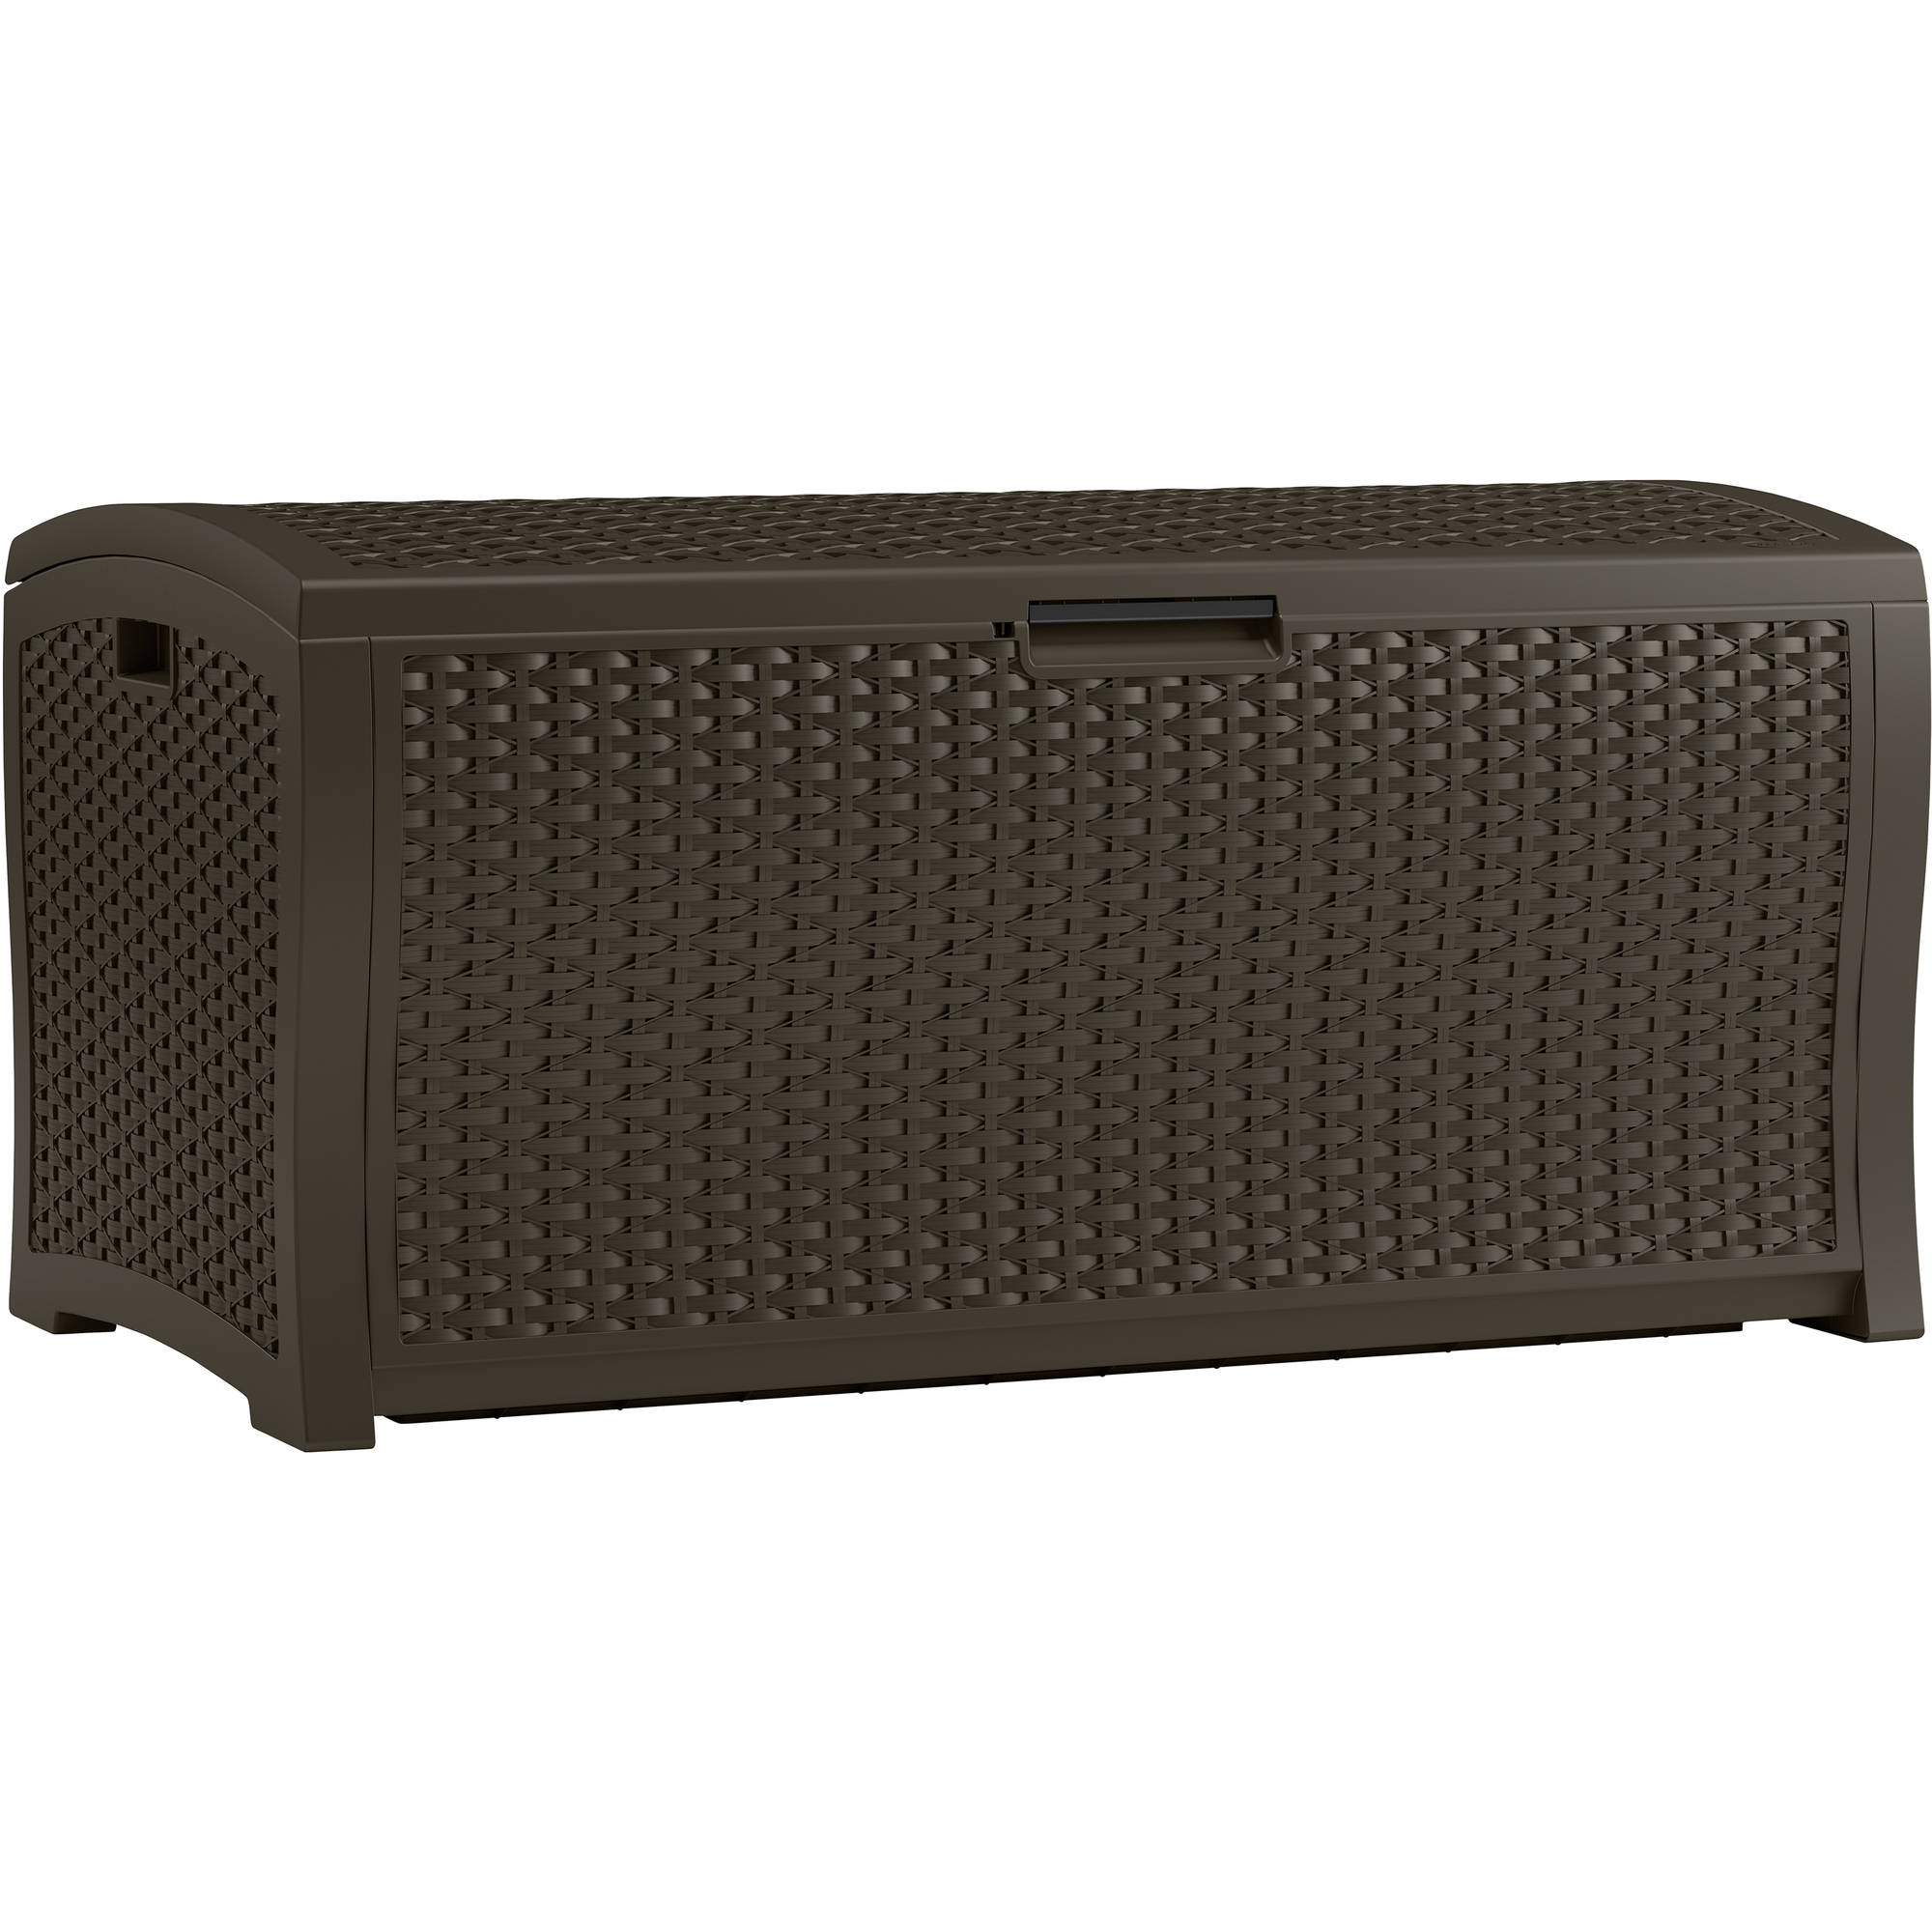 Suncast 122 Gallon Resin Wicker Deck Box, Java, DBW9935